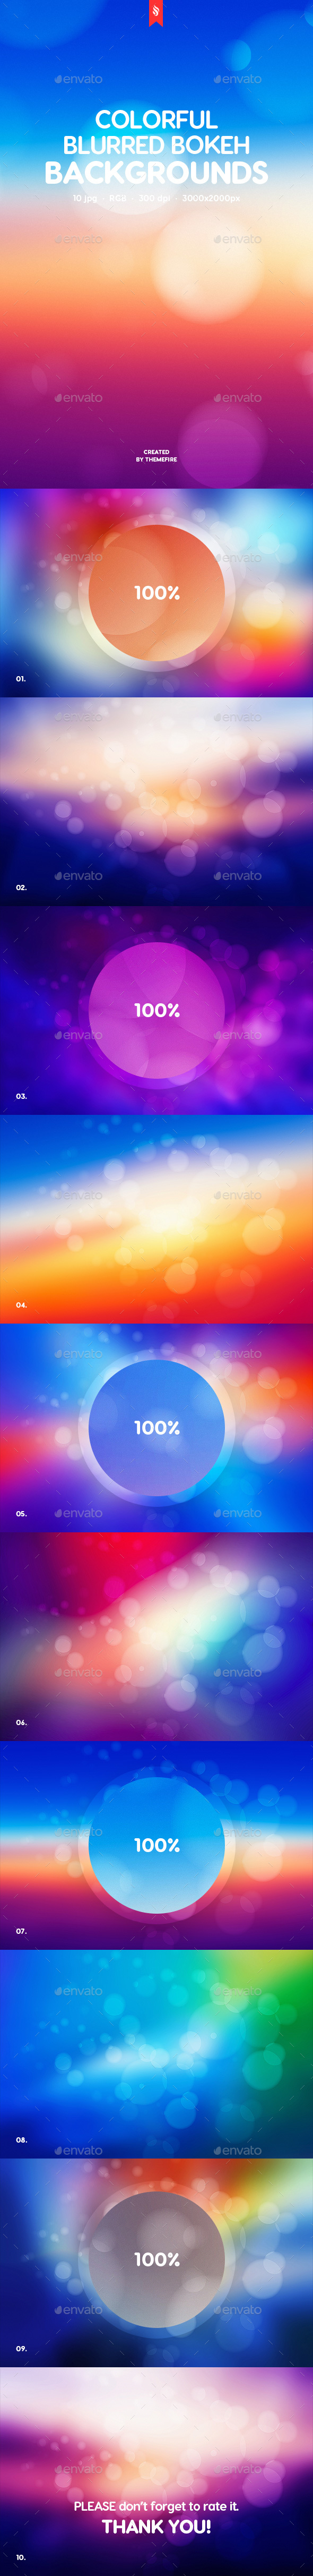 Colorful Blurred Bokeh Backgrounds - Abstract Backgrounds